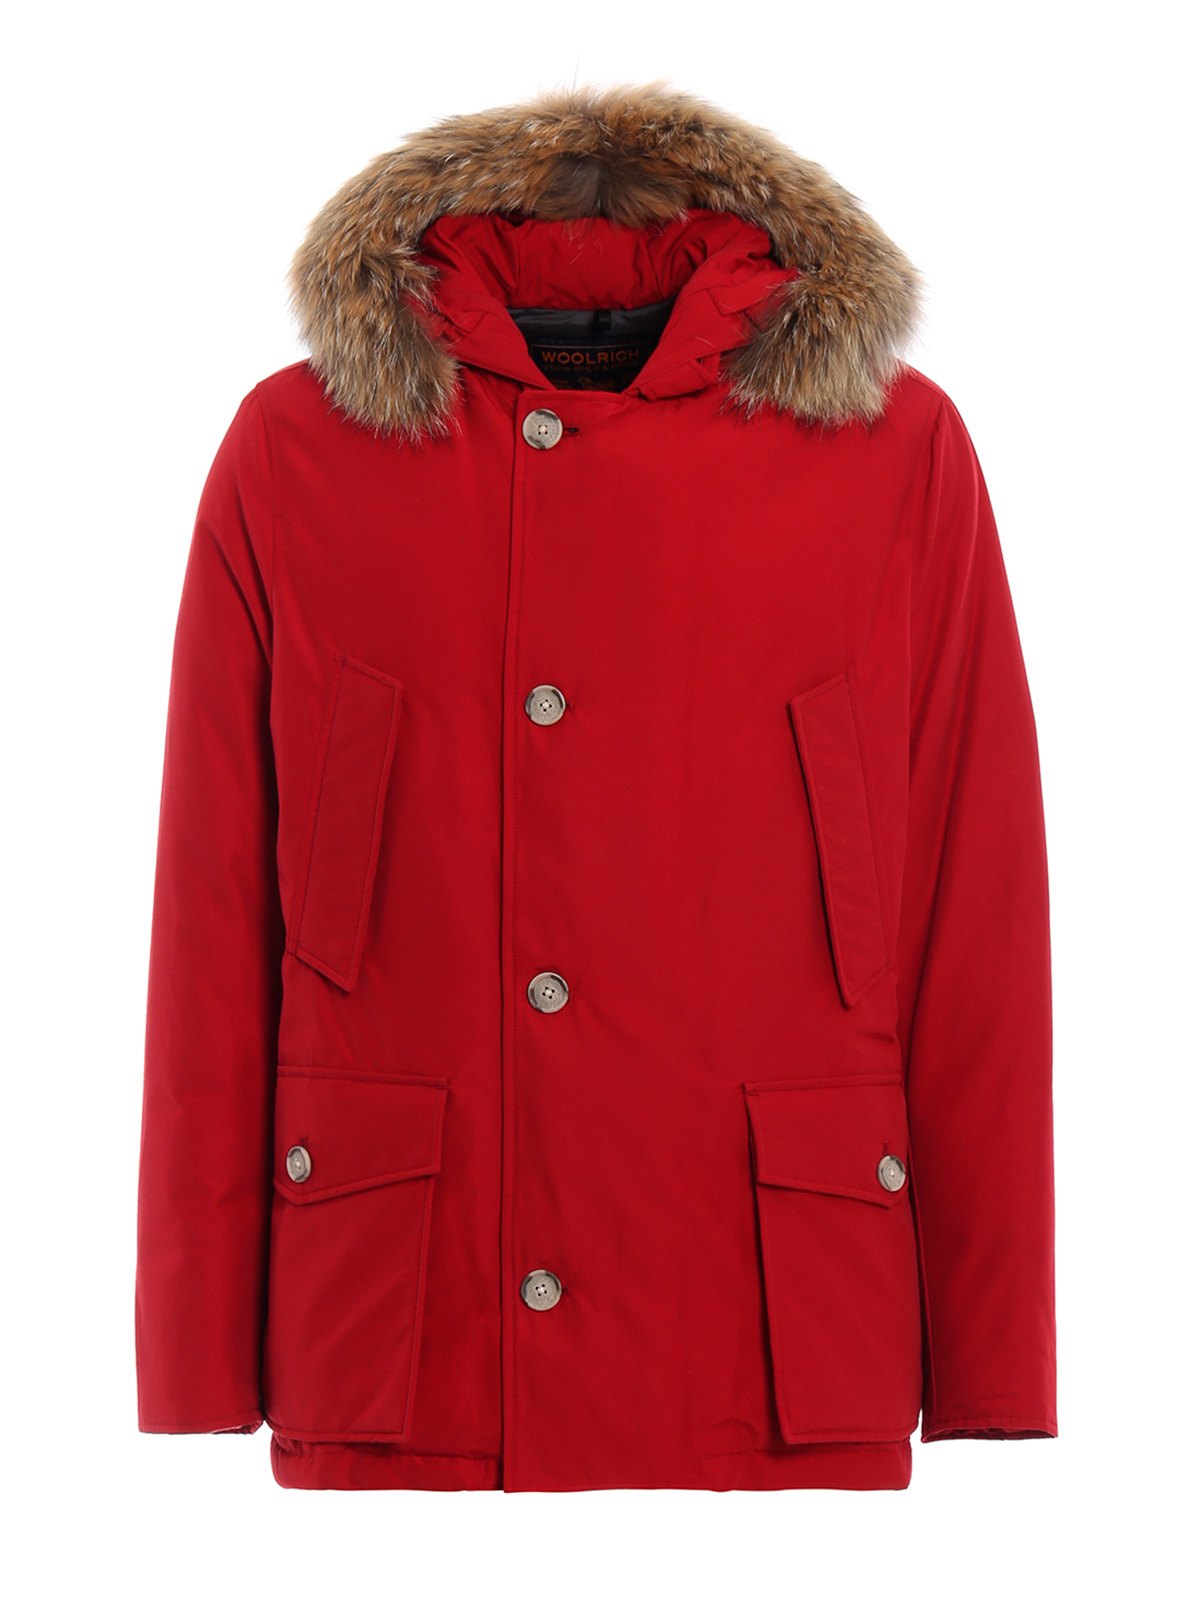 aac09623676e WOOLRICH Men's Arctic Anorak Parka Red | WOCPS2739 | Botta & B ...